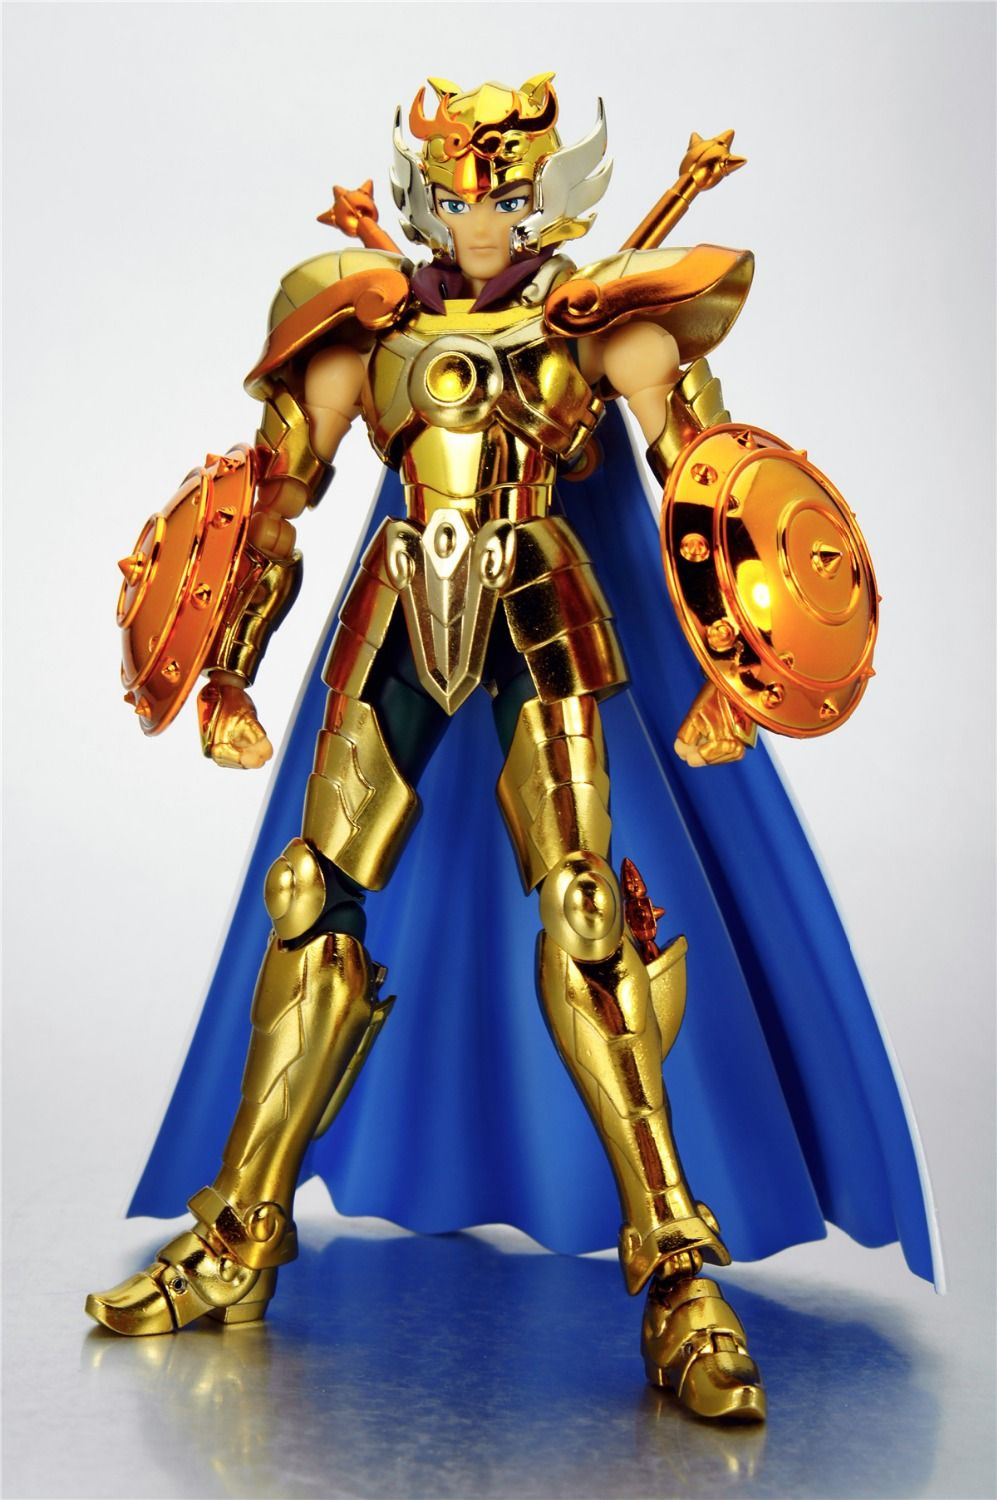 IN STOCK CS <font><b>Overspeed</b></font> Ex 2.0 Saint Seiya Libra Dohko EX Myth Cloth Metal Armor Action Figure Toy